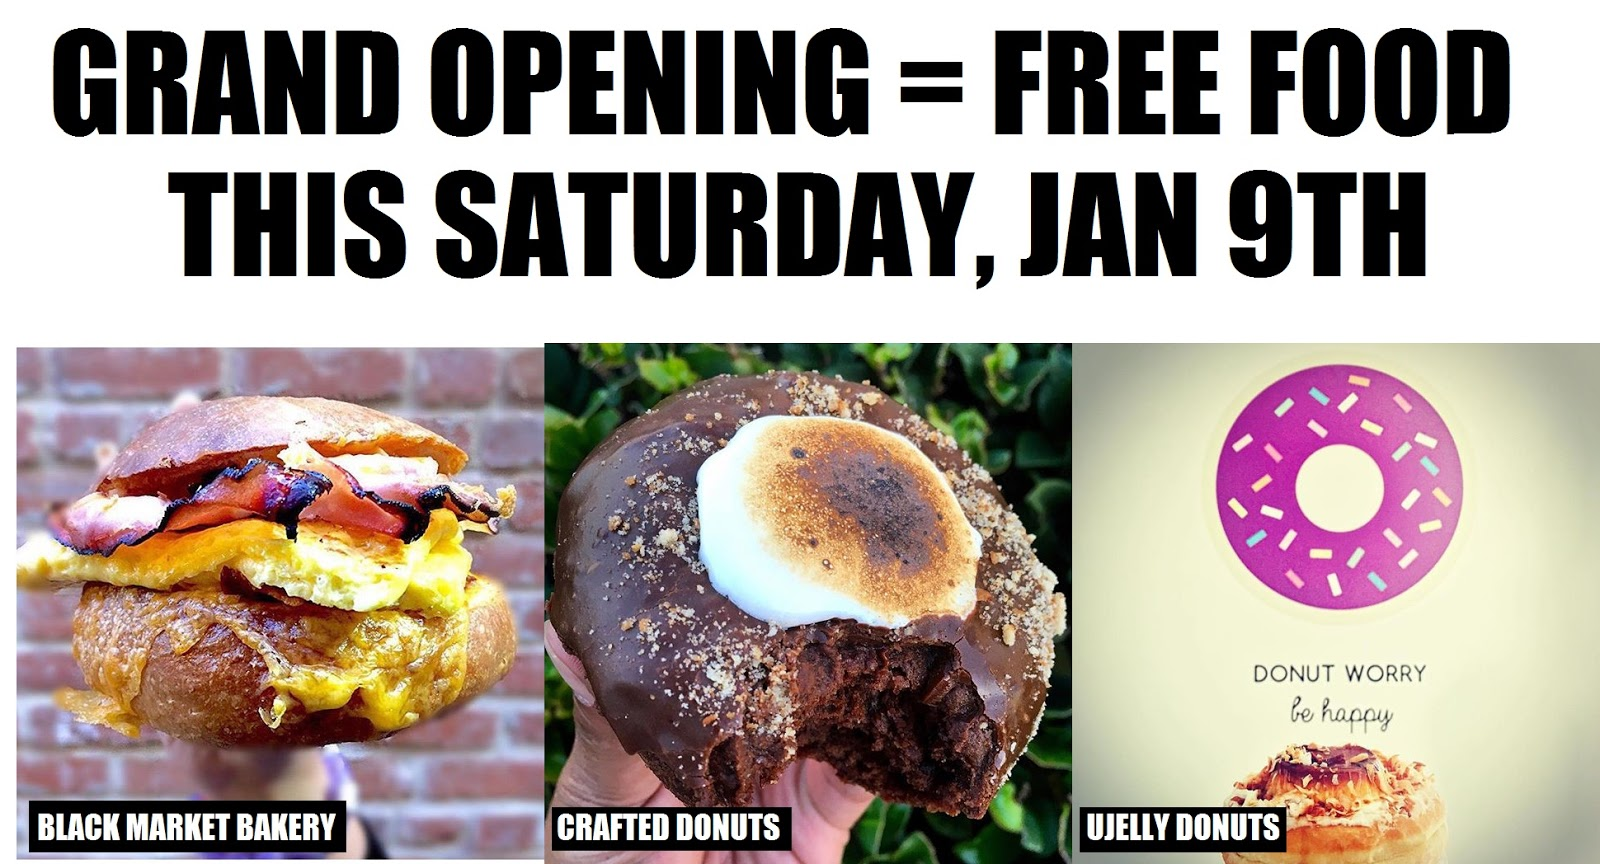 GET FREE FOOD THIS SATURDAY, JAN 9TH AT THE GRAND OPENING OF NEW BAKERIES!